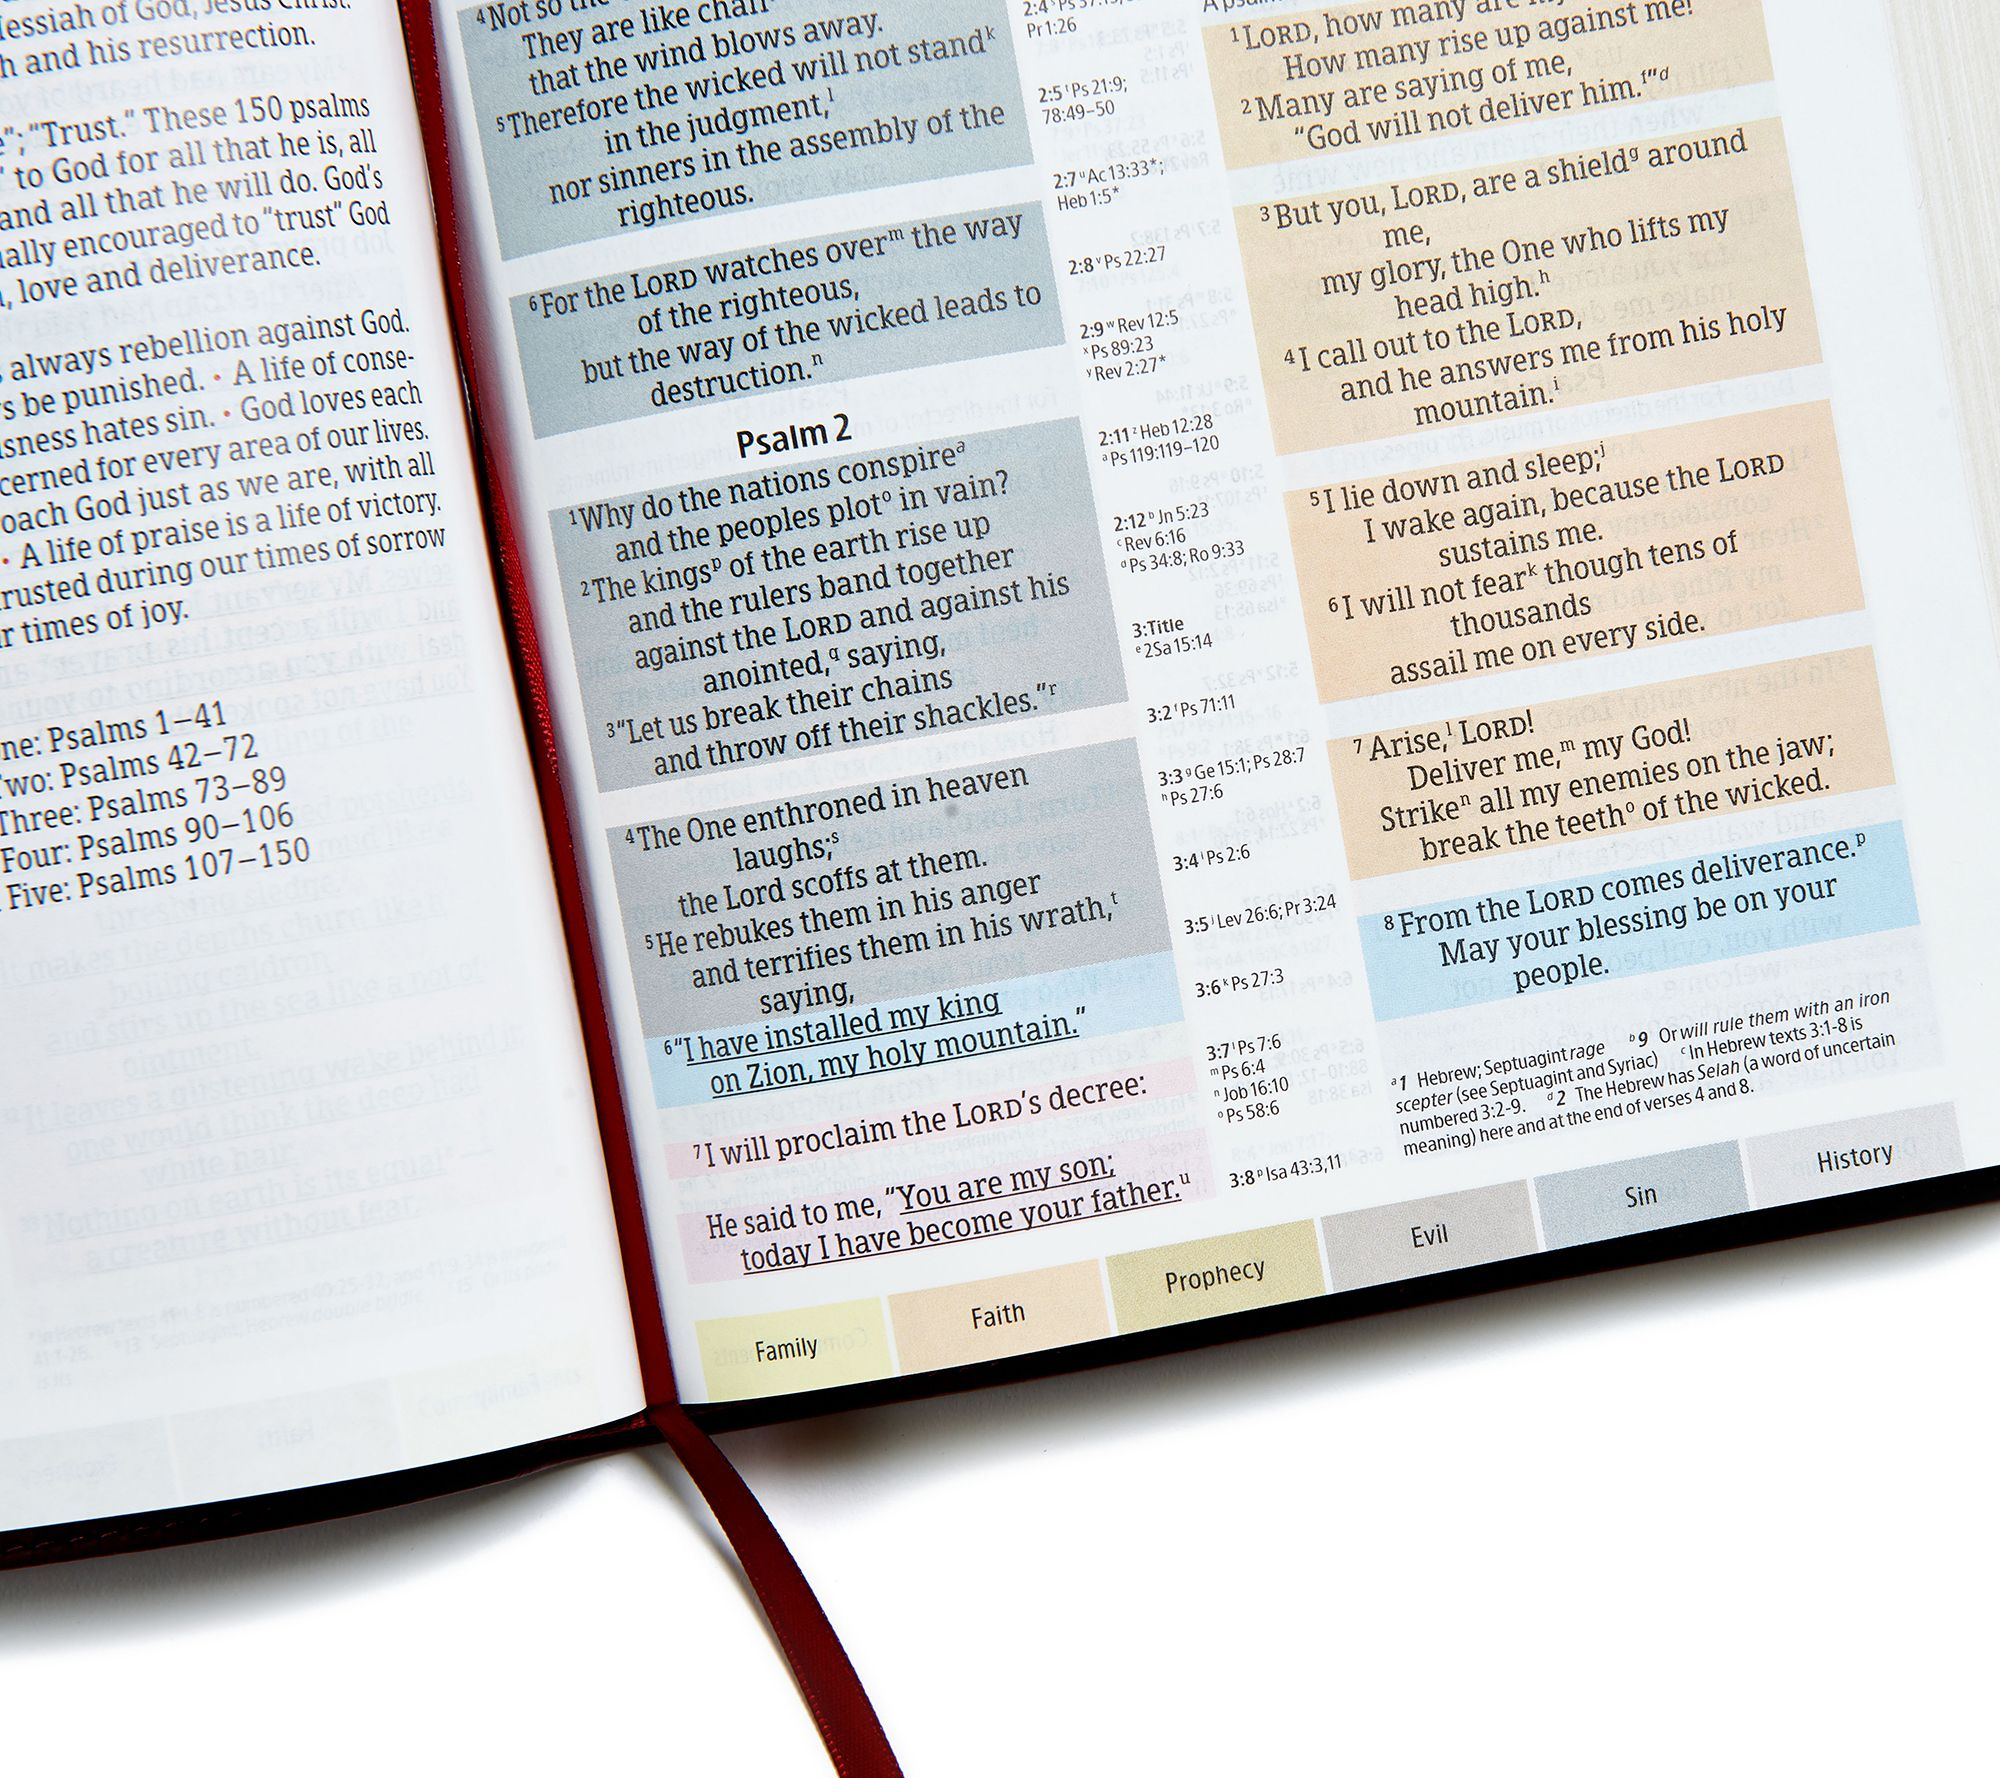 NIV Rainbow Study Bible with Color Coded Verses — QVC com